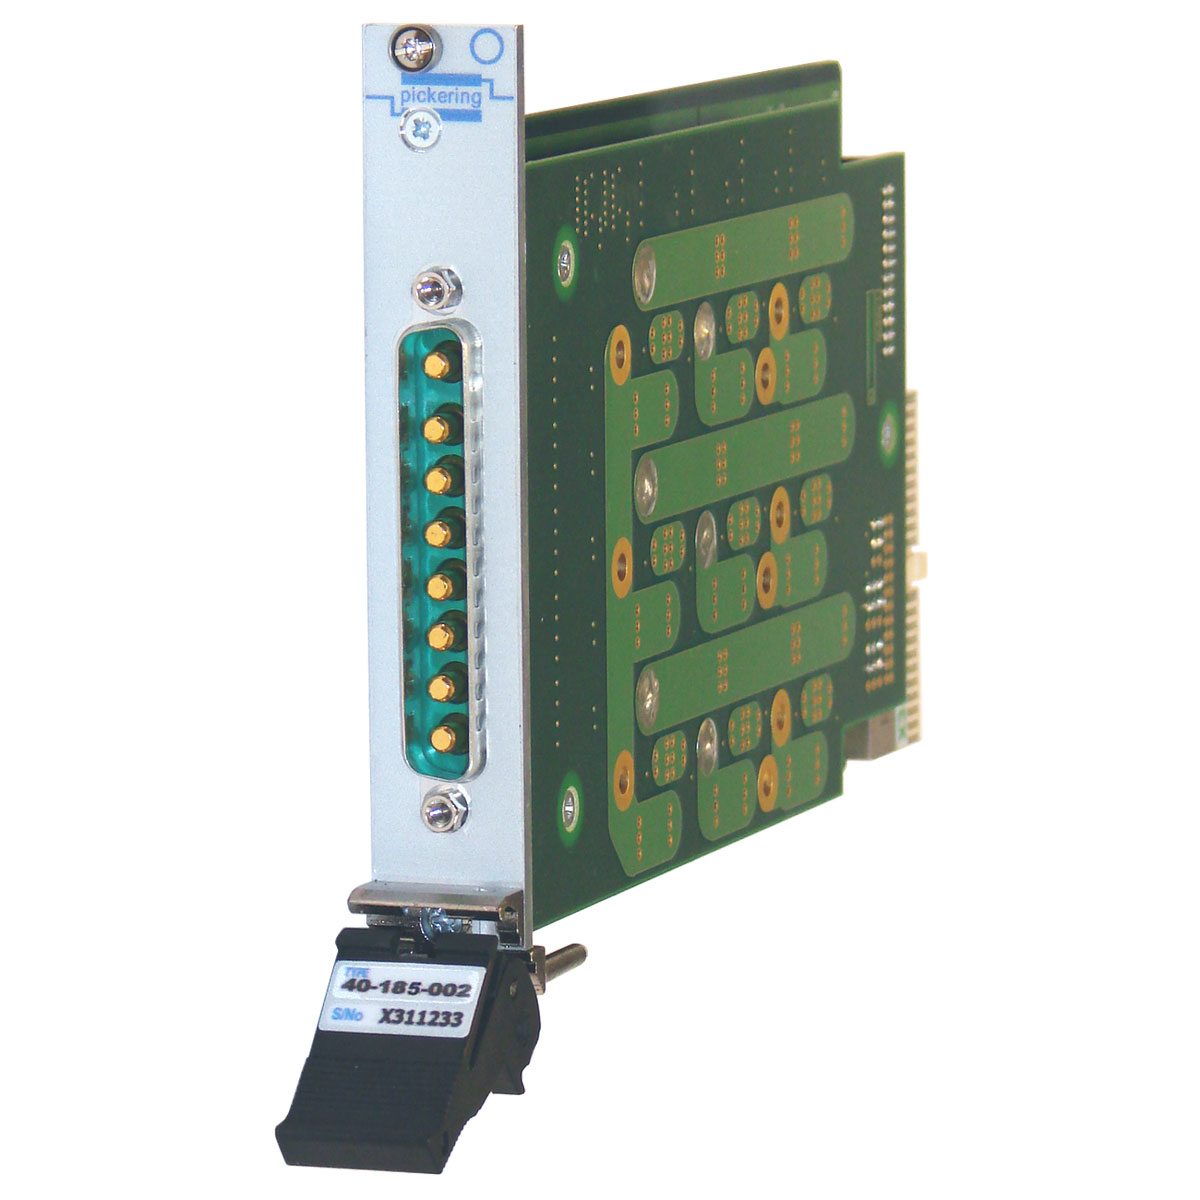 New Modular Switching Simulation Products Pickering Interfaces Sensitive Interconnect Driver Circuit Electronic Design Range Of Pxi High Power Switch Modules Expanded December 2014